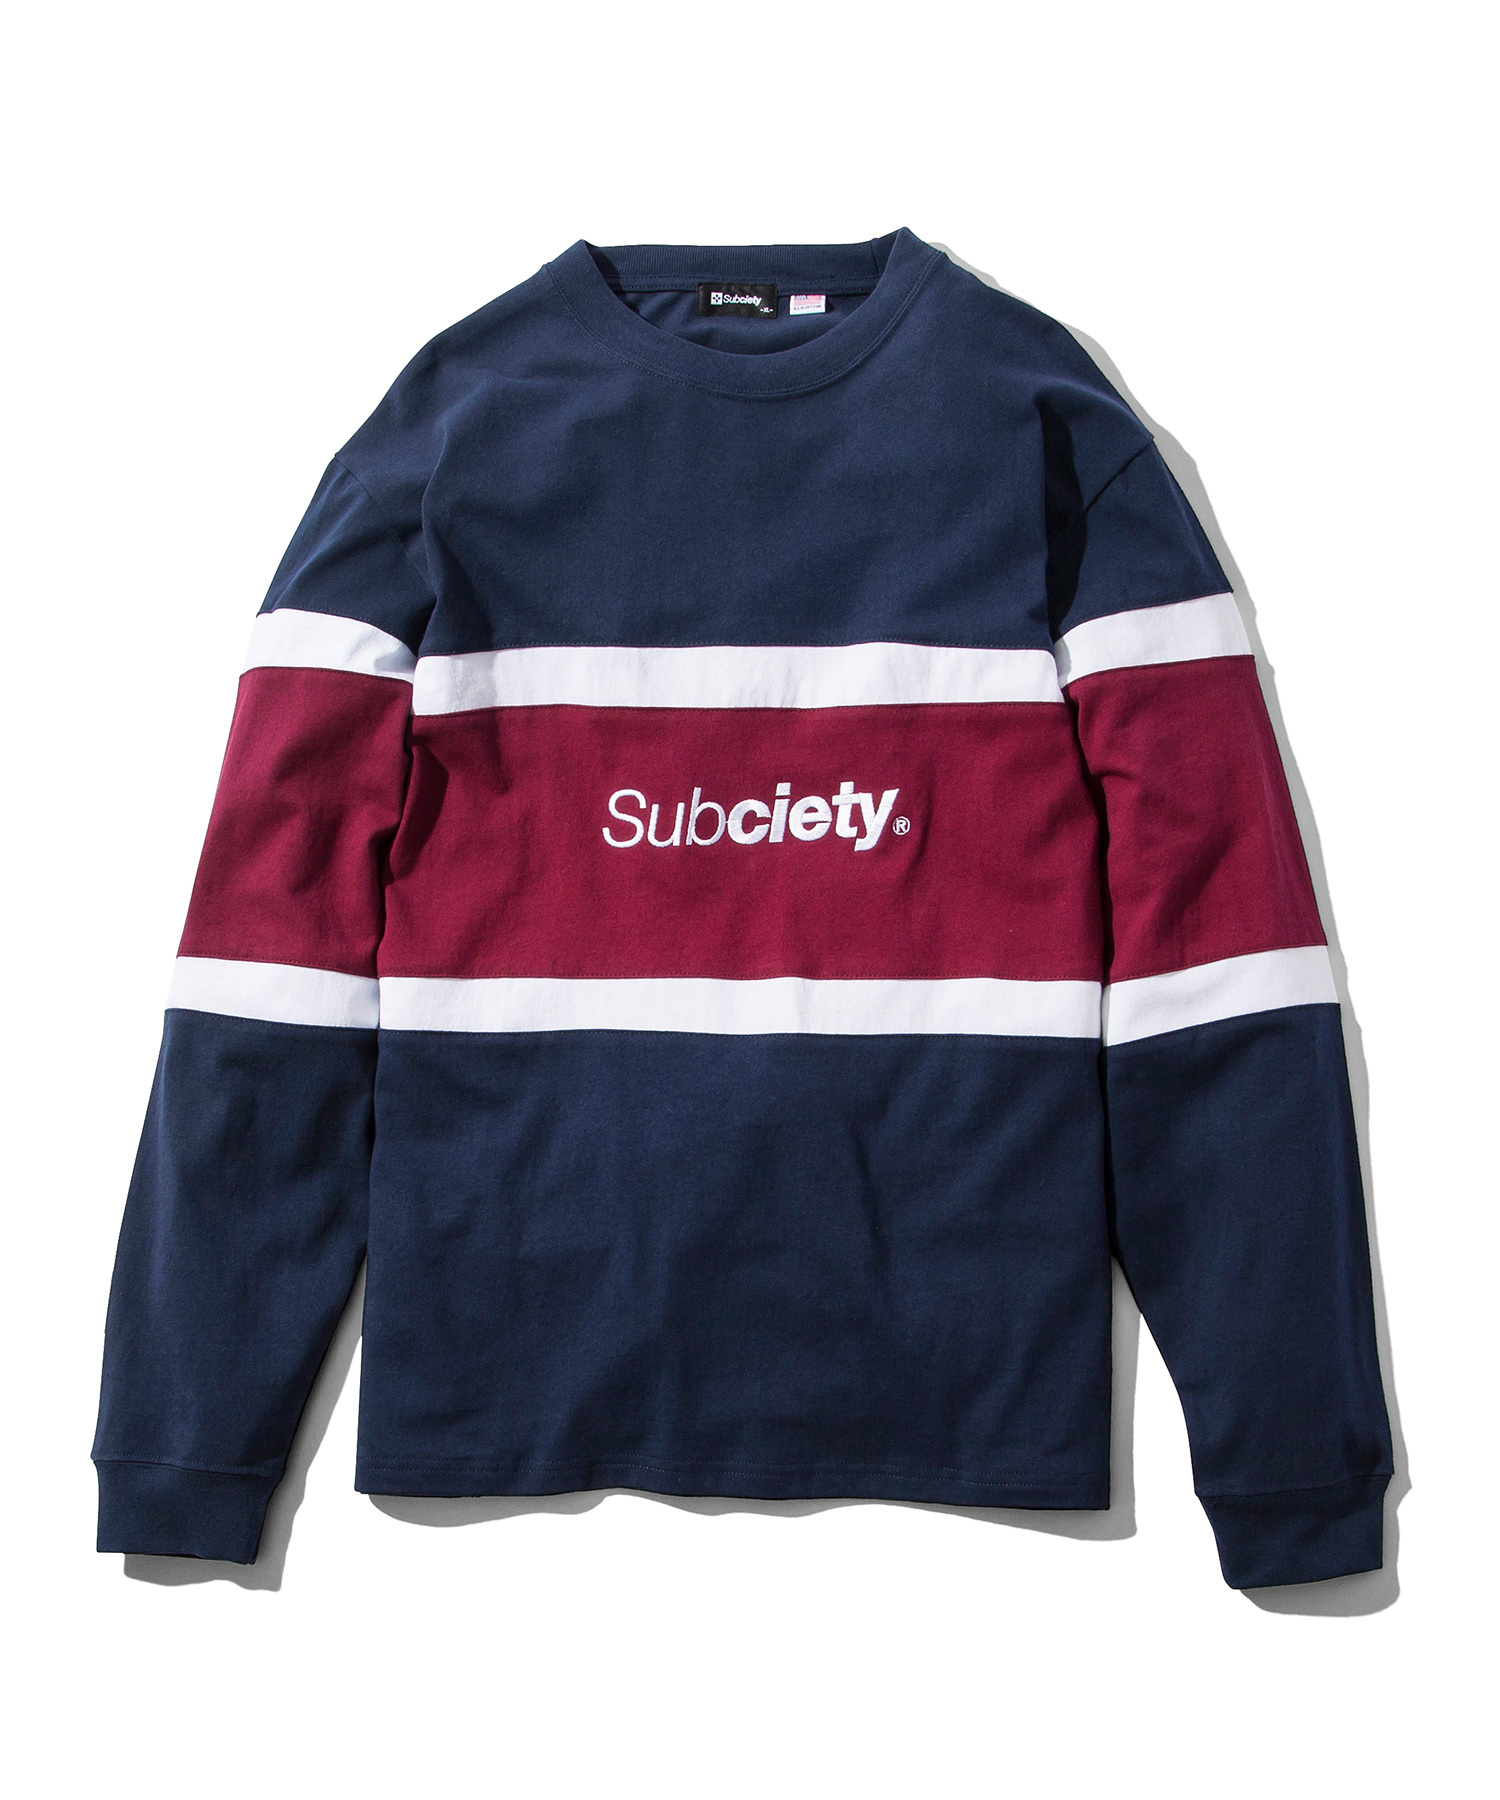 Subciety(サブサエティ) | SWITCHED L/S (Navy)